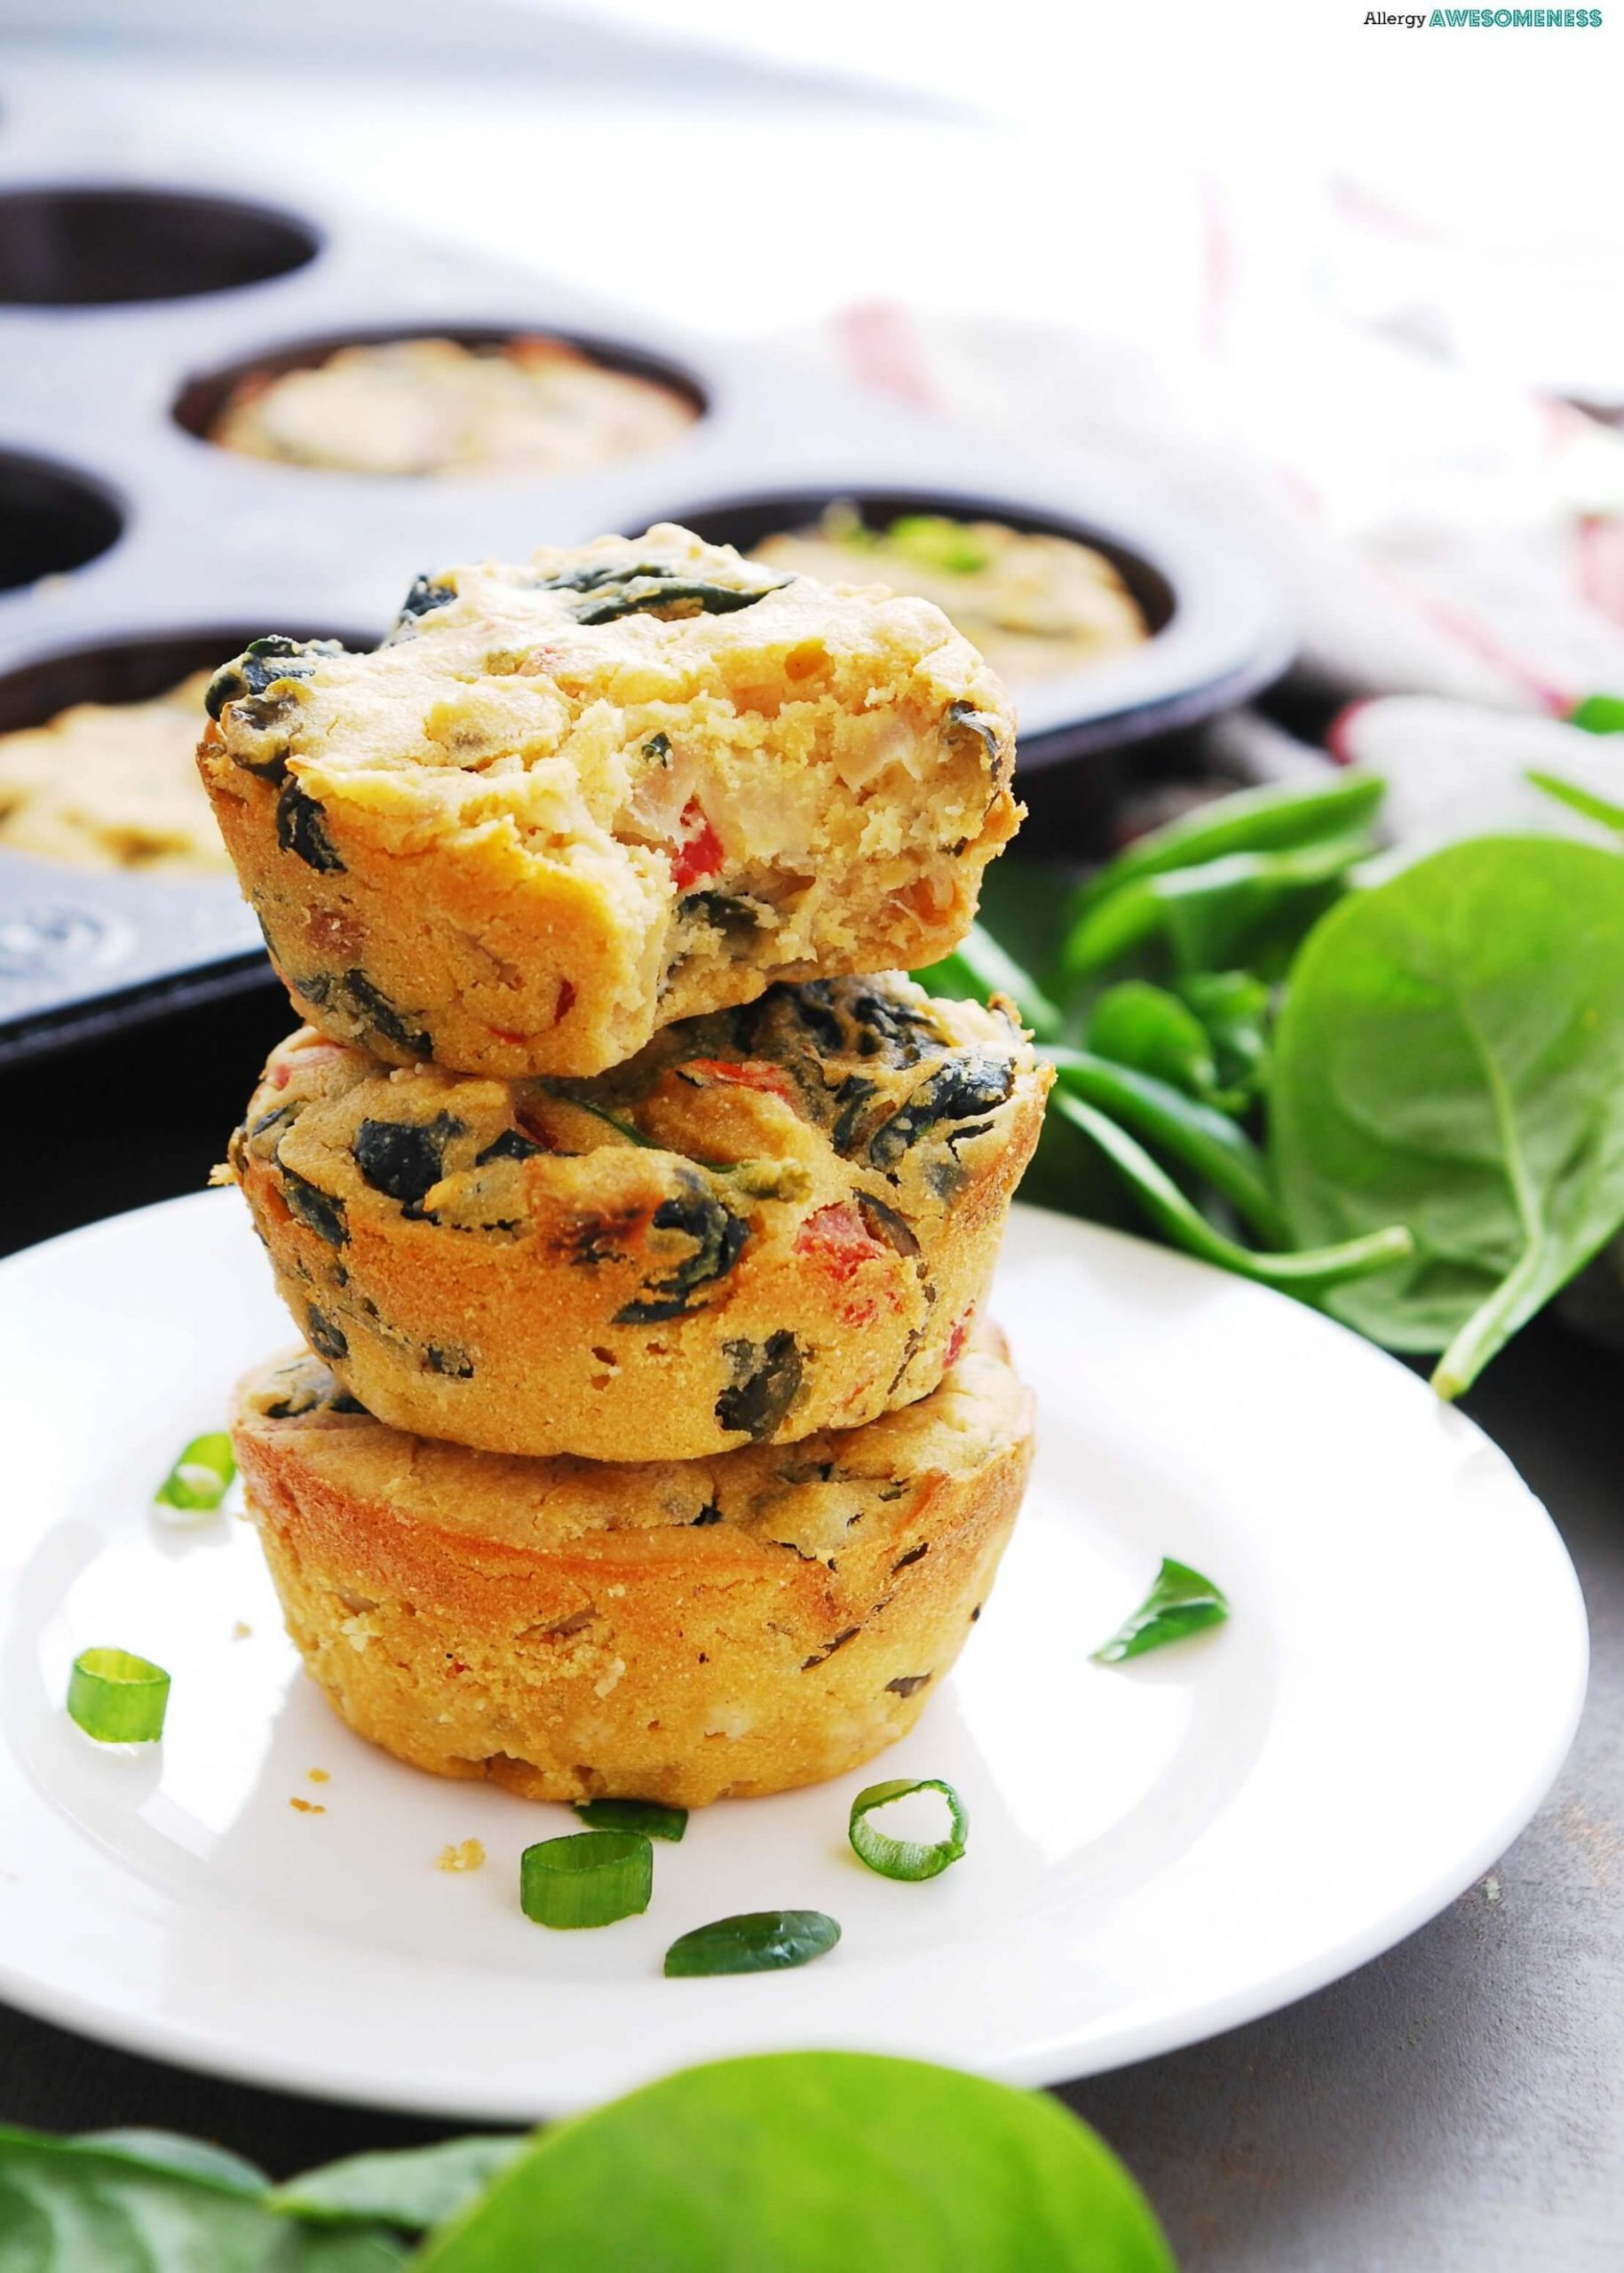 Egg-free & Dairy-free Frittata Cups | Allergy Awesomeness - Recipes Egg Free